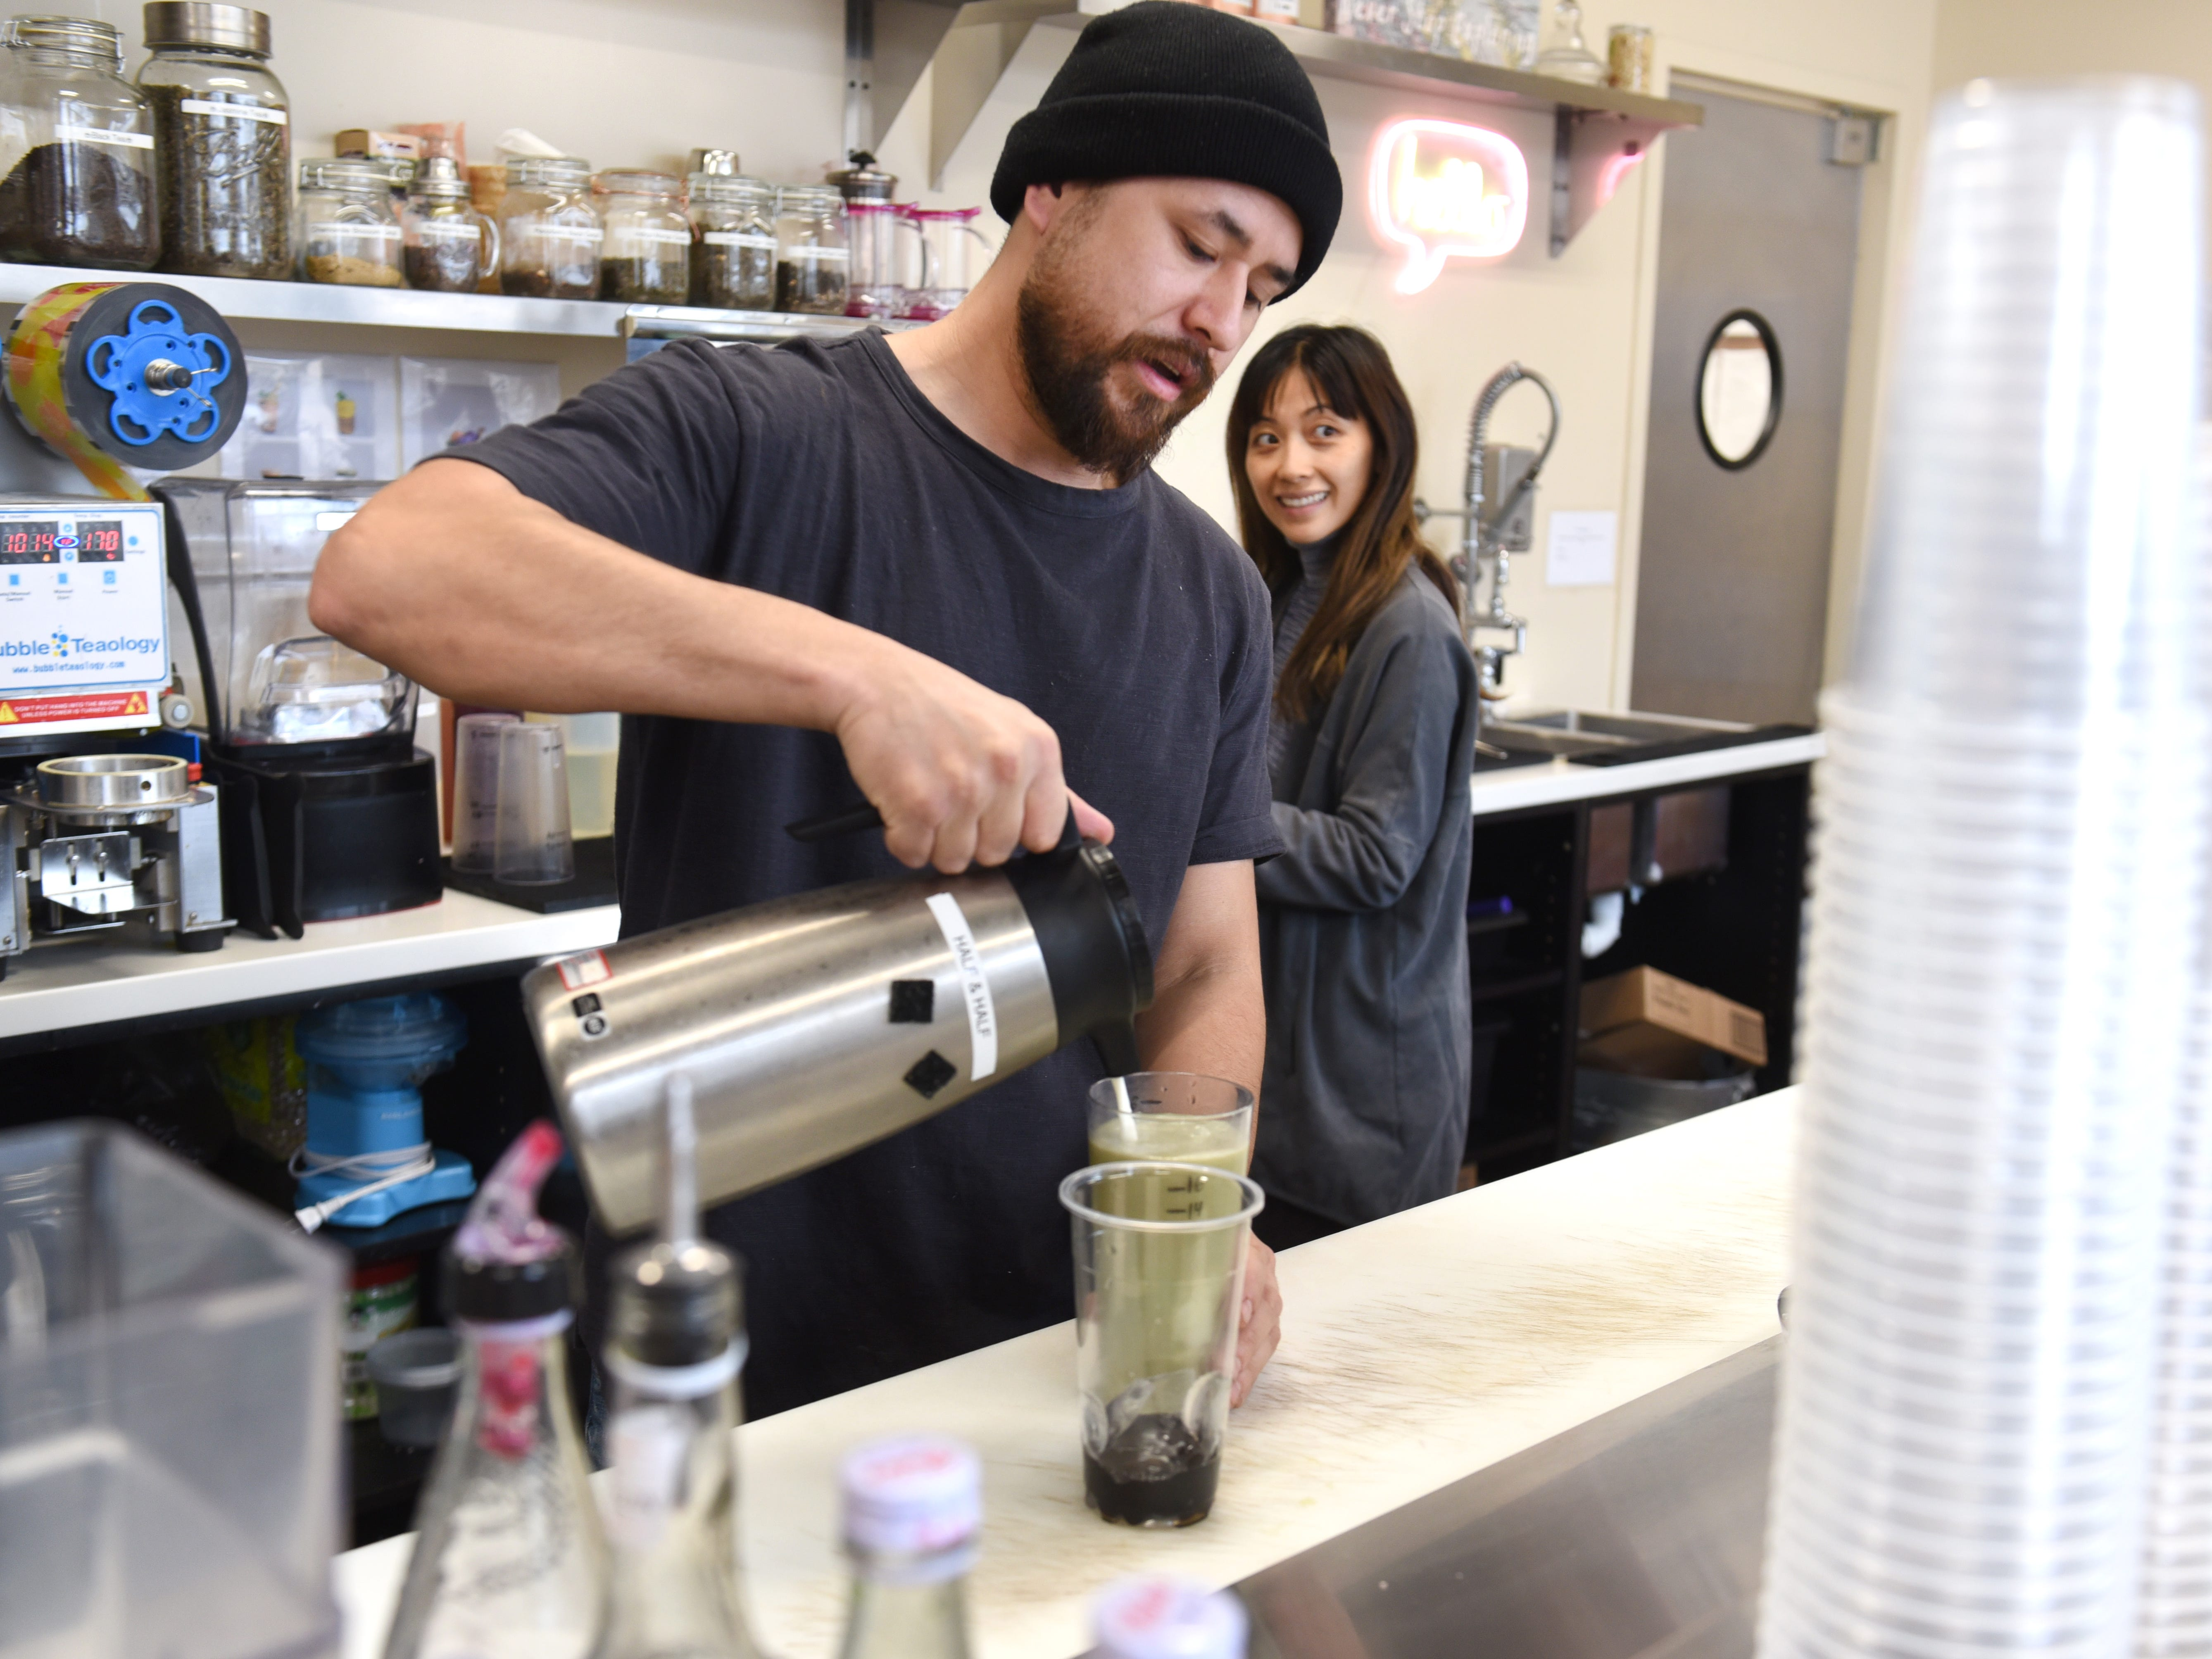 Cedric Lee, left, and his wife, Gowhnou, owners of Tou & Mai, make a honey dew sweet boba drink on Wednesday, Feb. 5, 2019 at the midtown Detroit store.